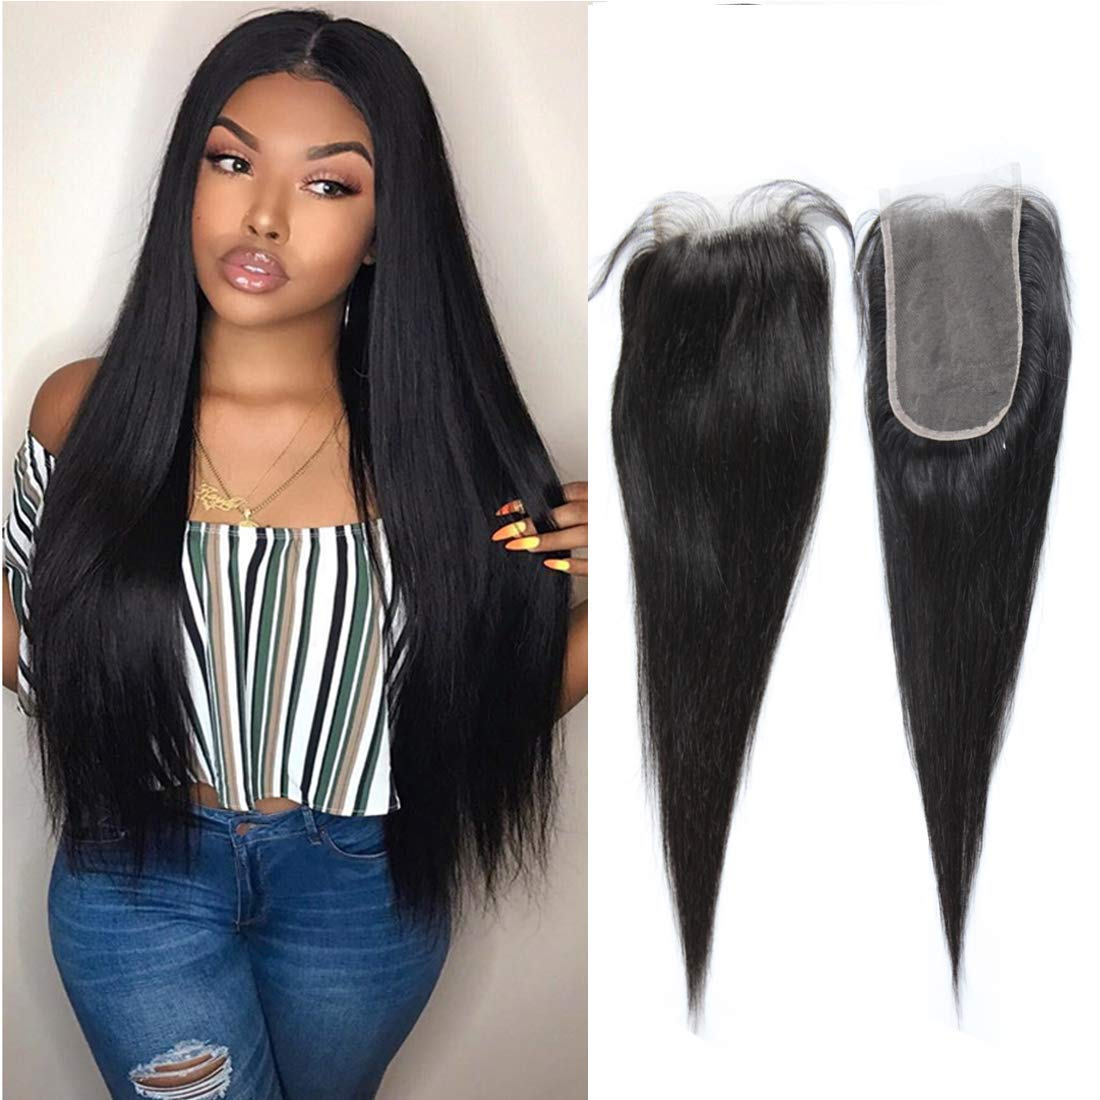 Amazon.com : Straight Wave Lace Front Closure 4X6 Free Part Brazilian Human  Hair Extensions Silky Preplucked Bleached Knots Sew In Weave Virgin Hair  Lace Front Closure For Black Women Wet And Wavy